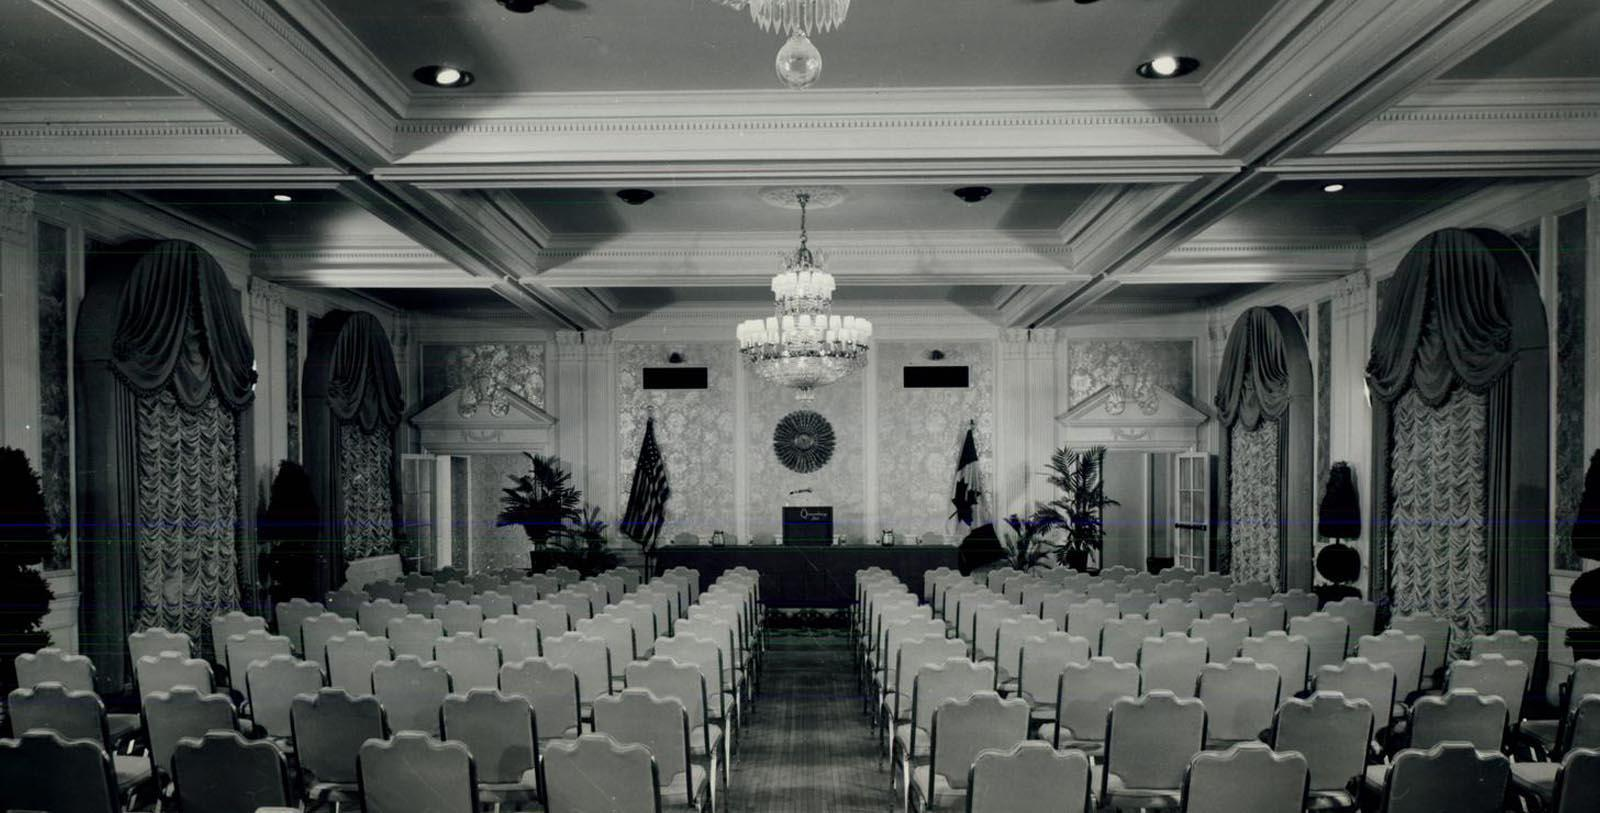 Historic Image of Ballroom at The Queensbury Hotel, 1926, Member of Historic Hotels of America, in Glens Falls, New York, Discover